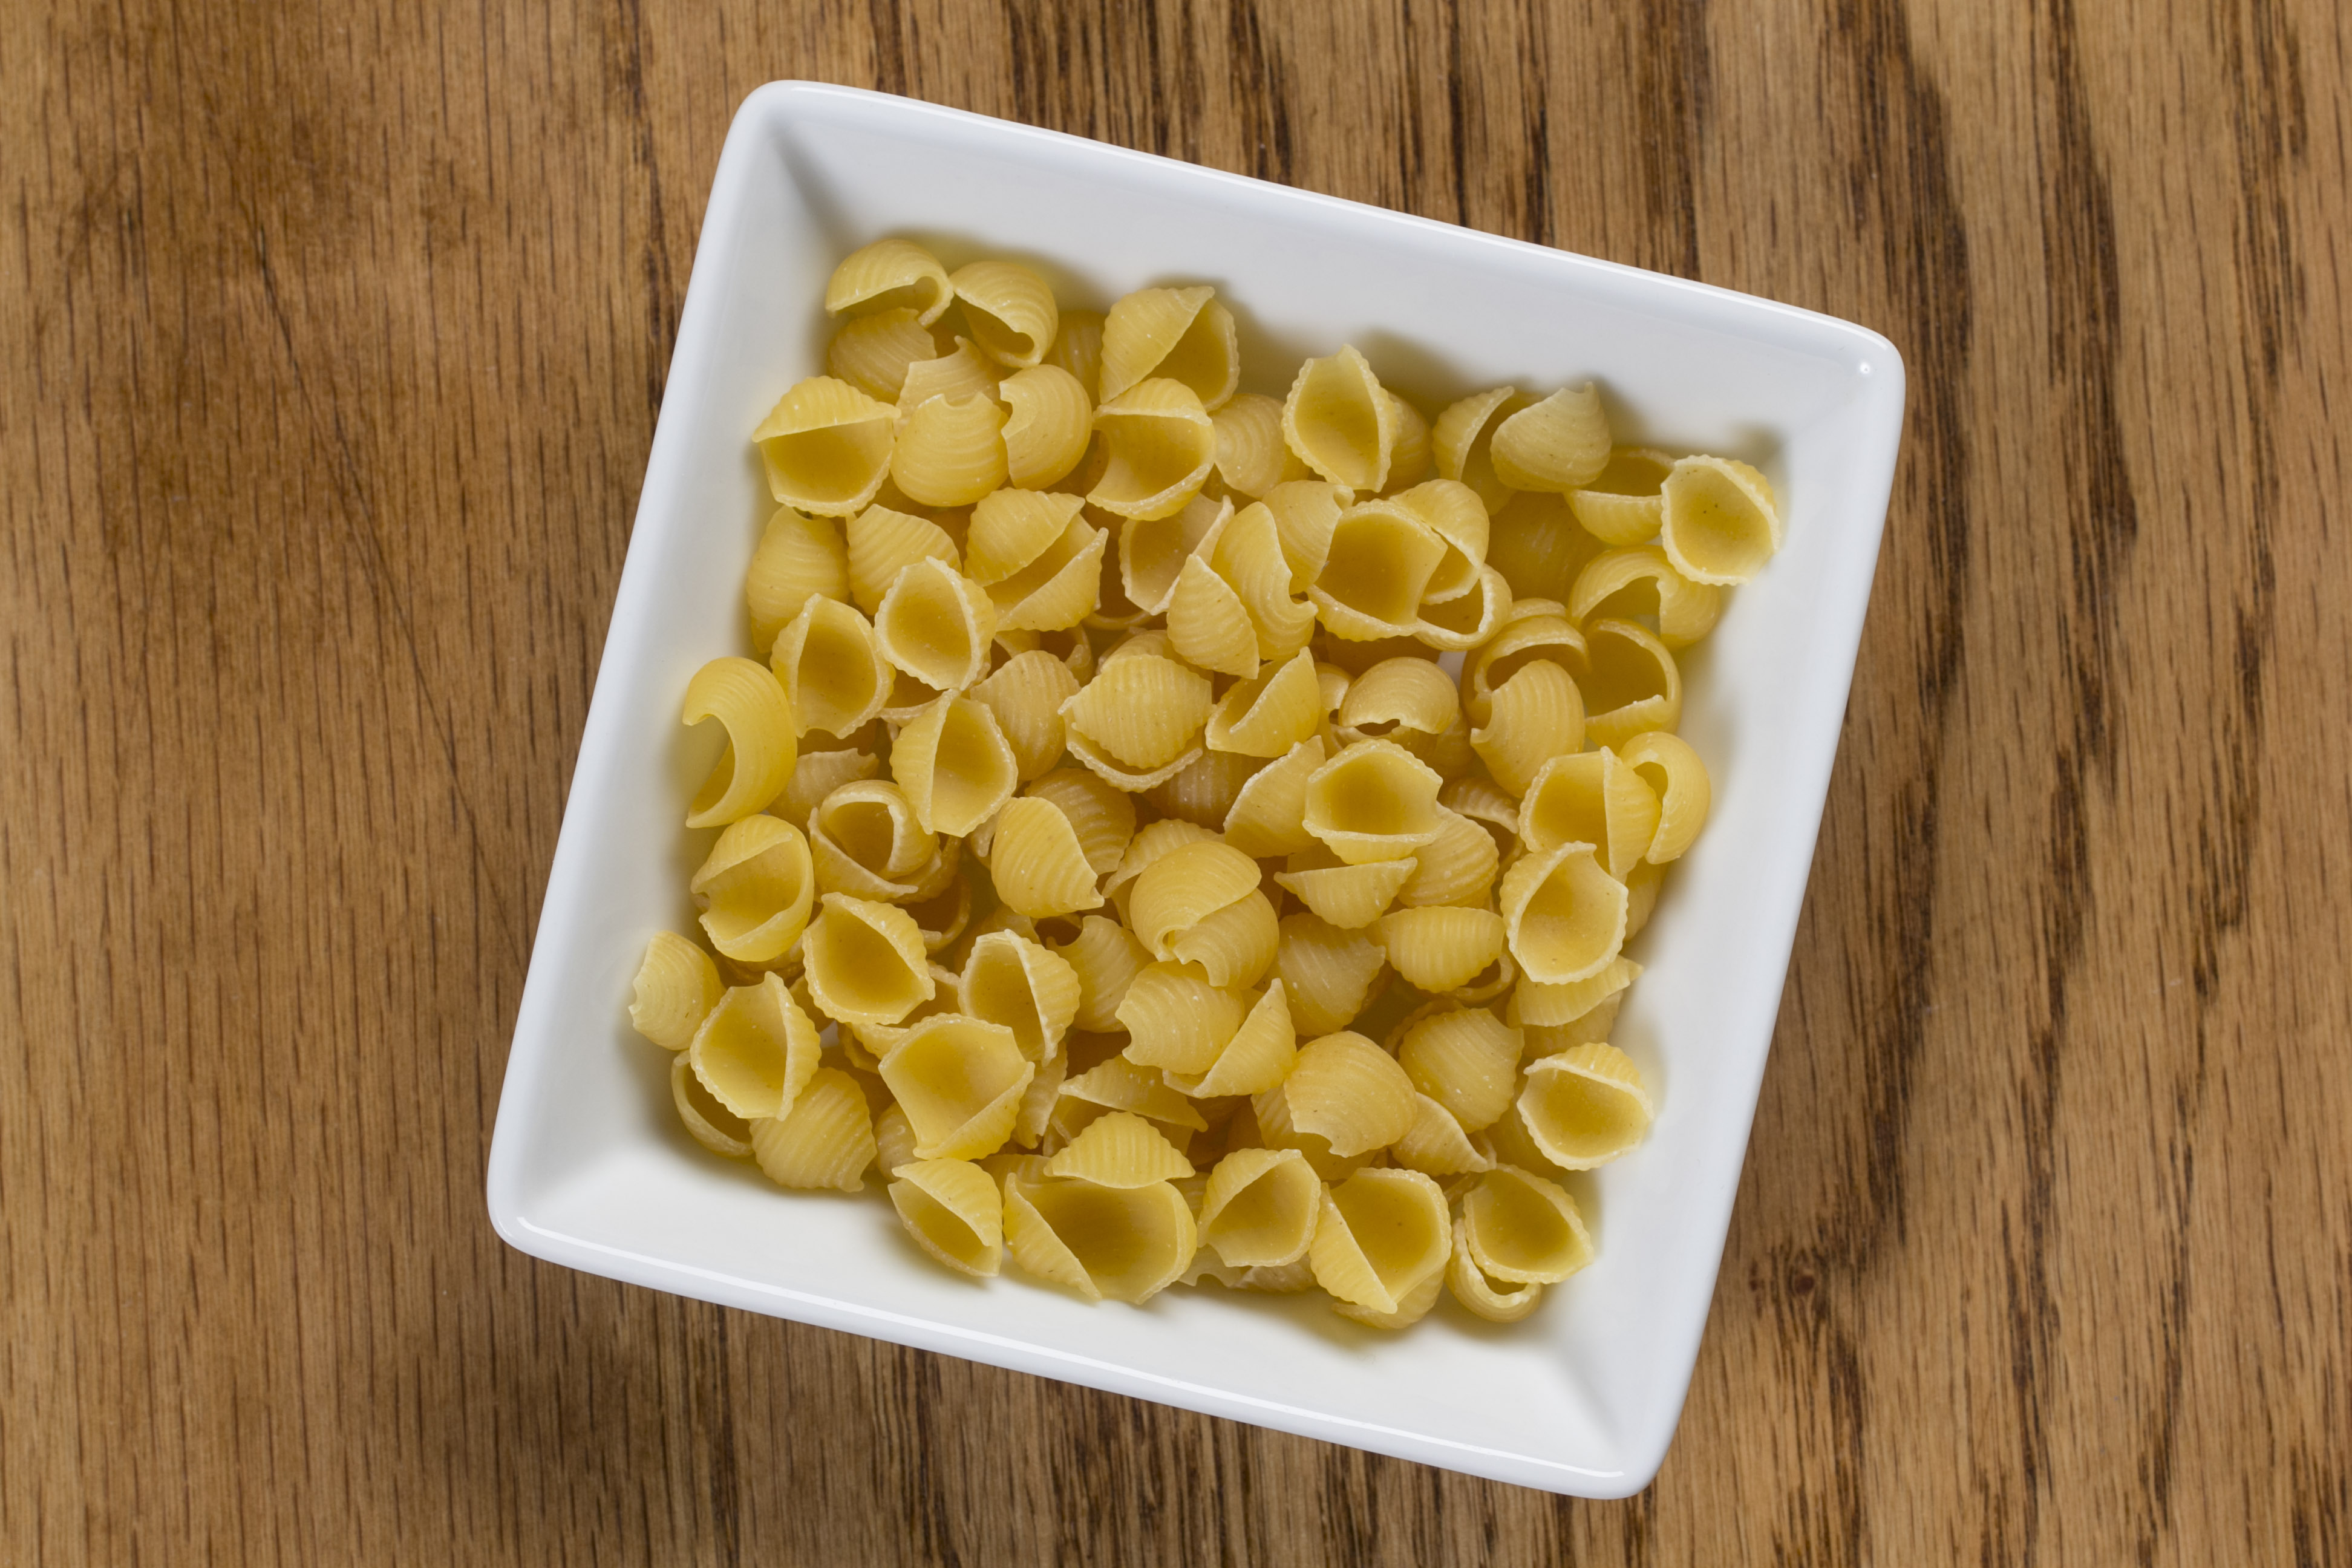 And For A Fun Version Of A Weeknight Macaroni And Cheese How About Using Small Shells Instead Of Traditional Elbow Macaroni This Pasta Shape Is A Pantry